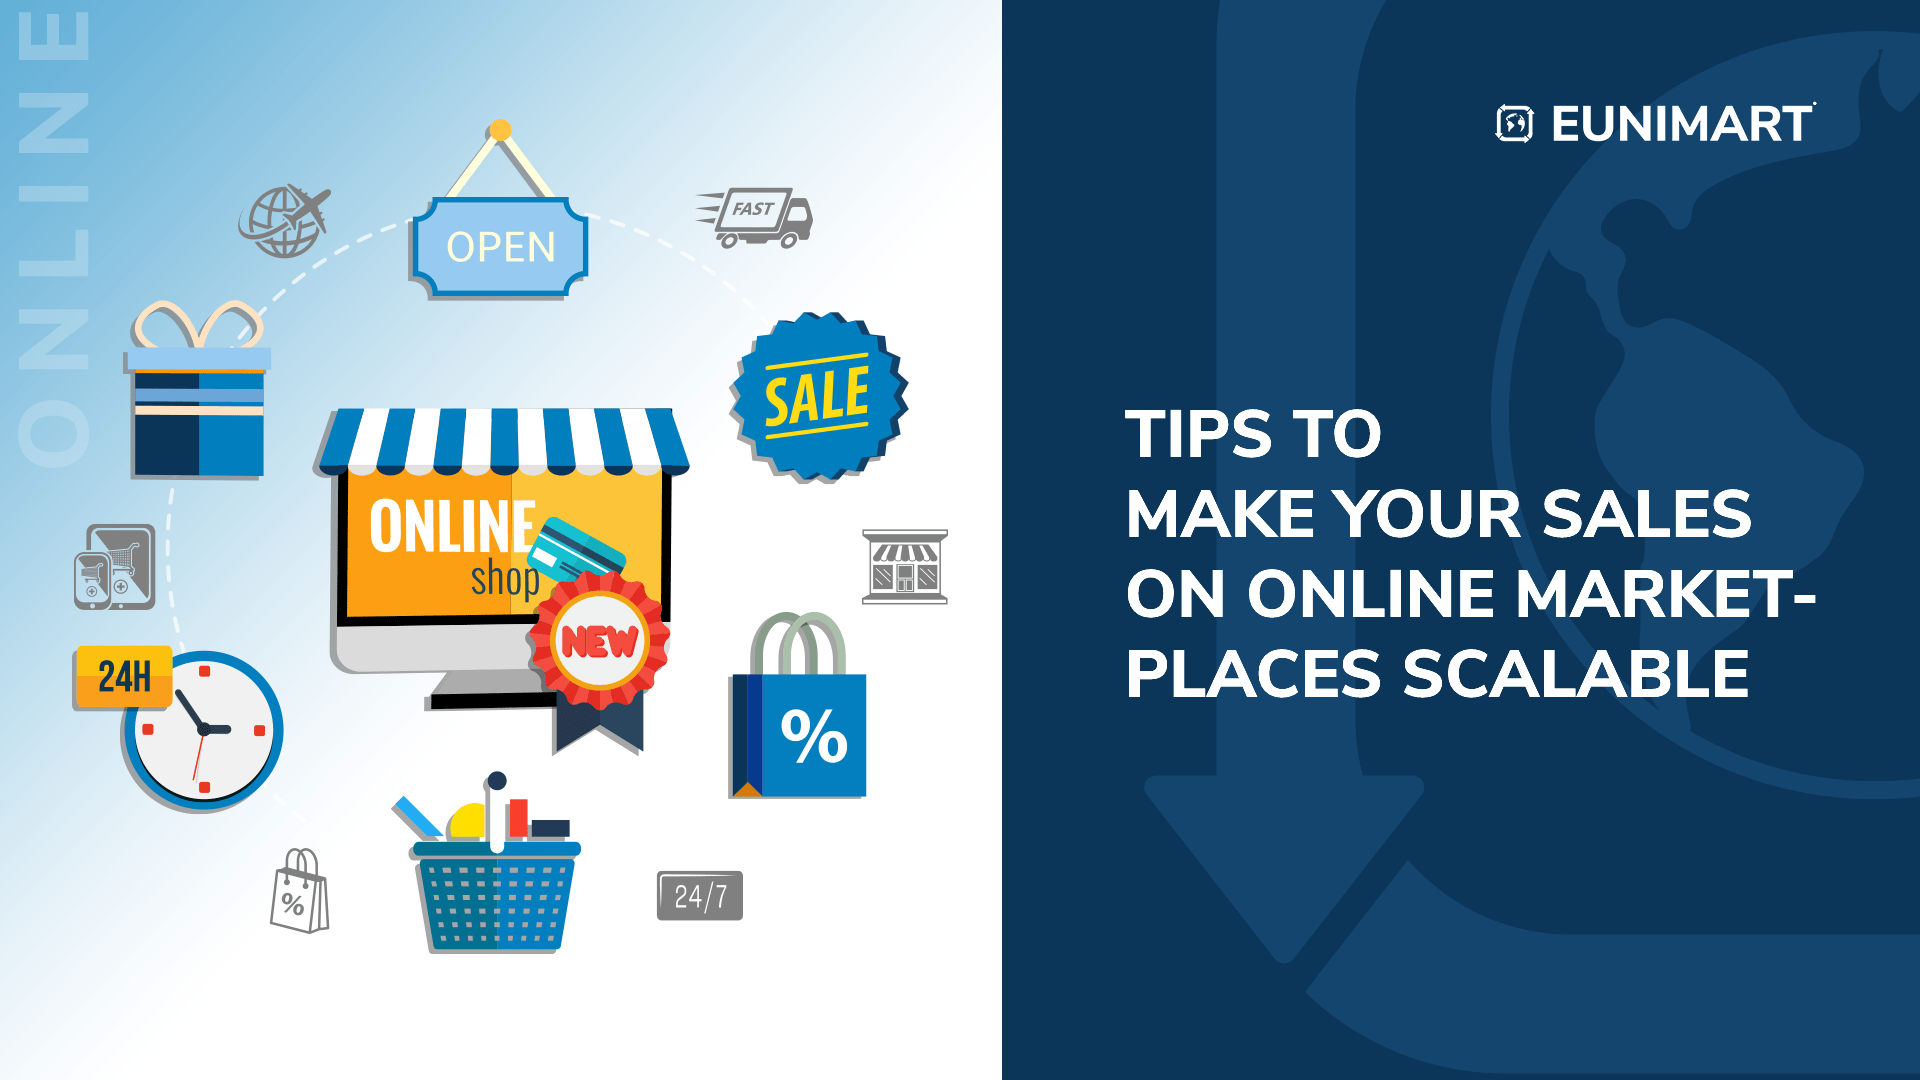 Tips to Make your Sales on Online Marketplaces Scalable